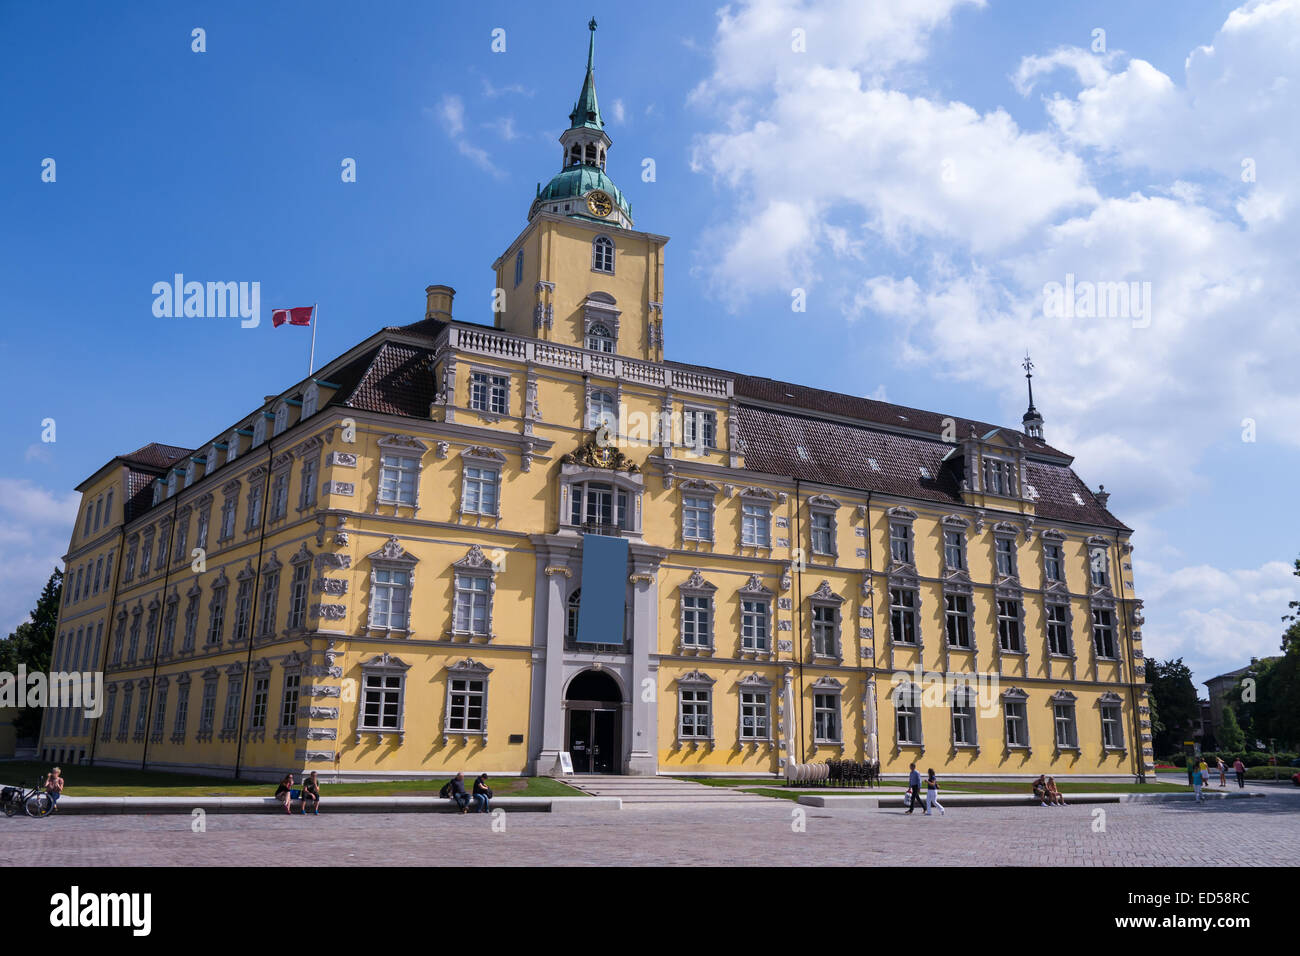 castle and marketplace in oldenburg in summer - Stock Image